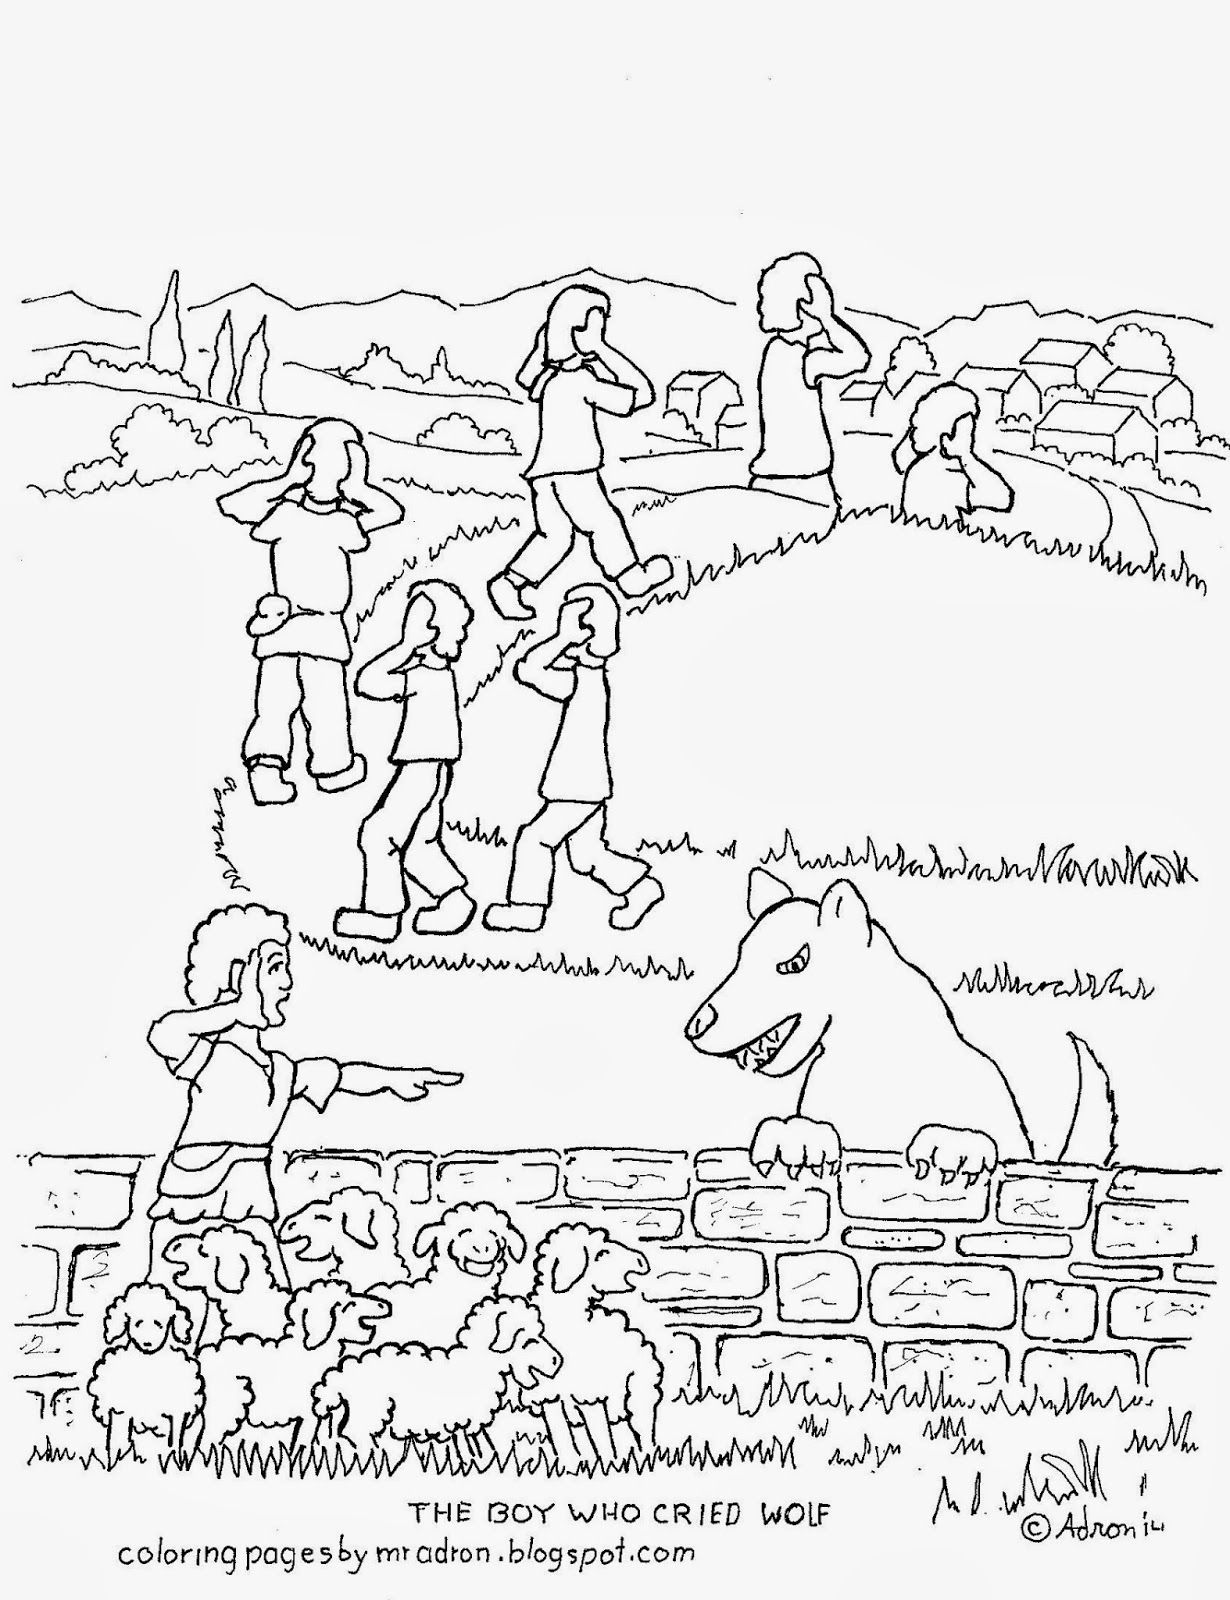 Coloring Picture Of The Boy Who Cried Wolf See More At My Blogger Http Coloringpagesbymradron Blogspot C Coloring Pages Wolf Colors Coloring Pages For Boys